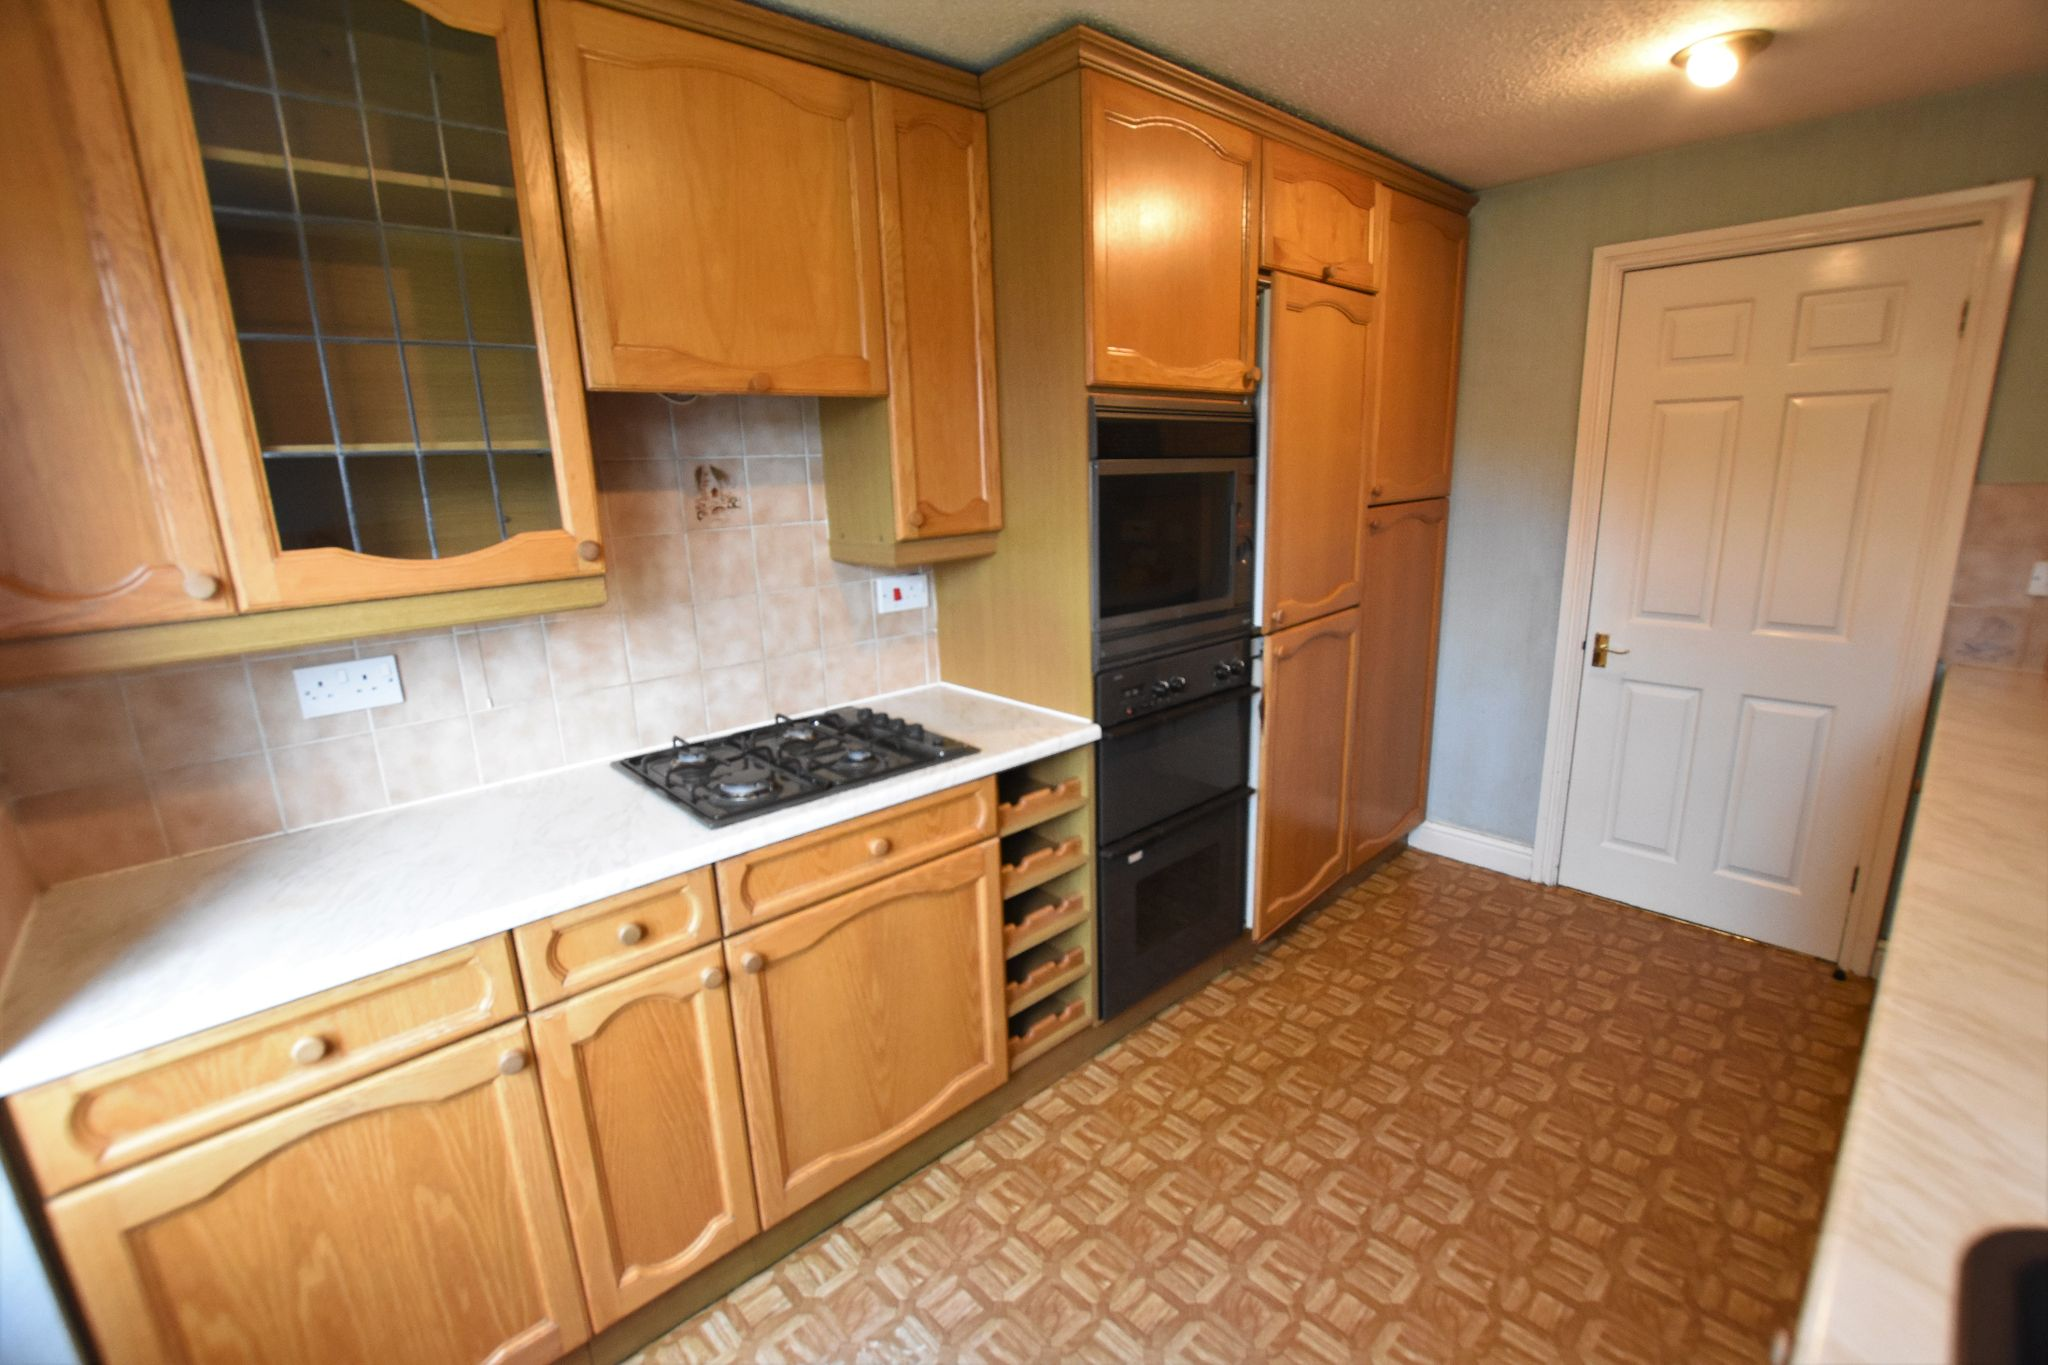 4 bedroom detached house Sold STC in Preston - Kitchen